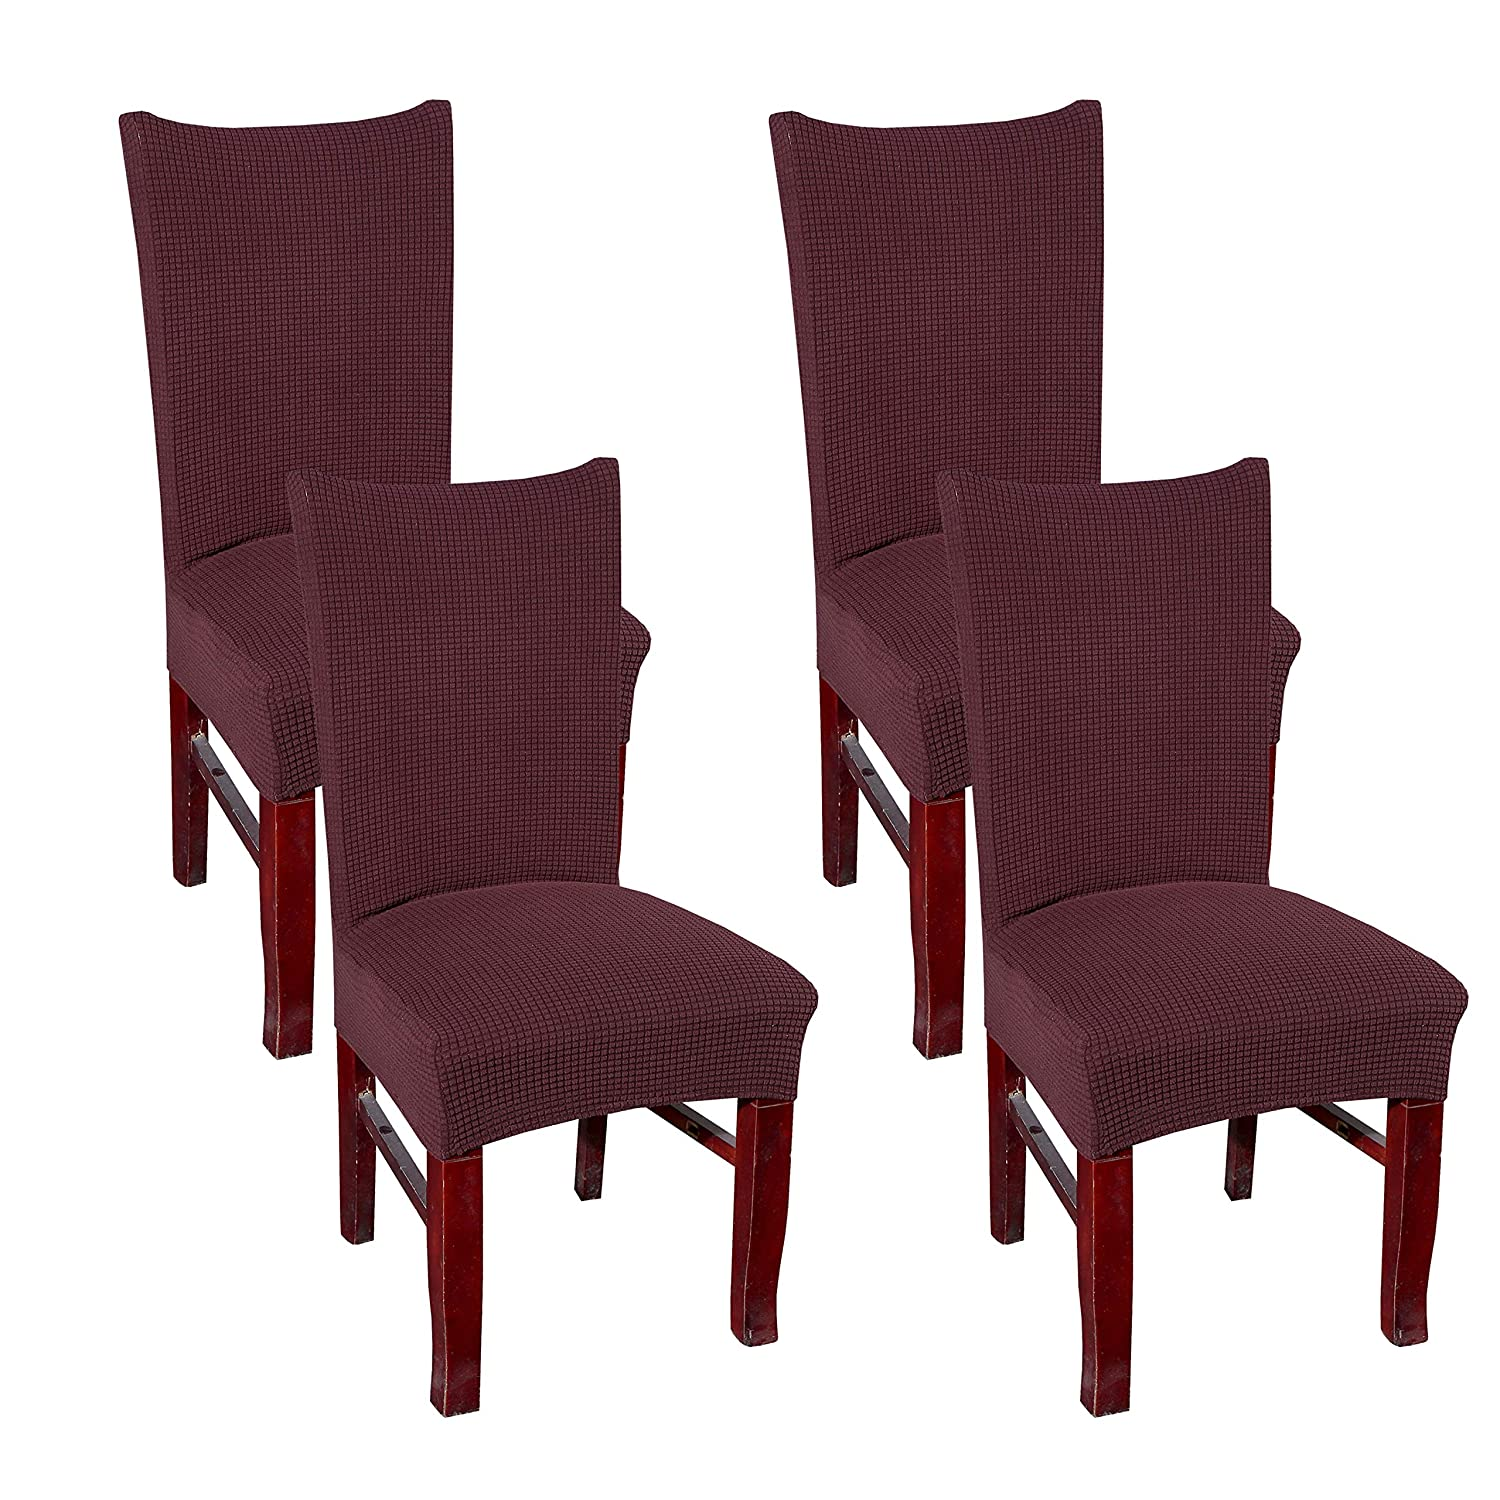 4 Pack, Grey Khalee Jacquard Super Stretch Dining Chair Covers Slipcover Protect Cover,